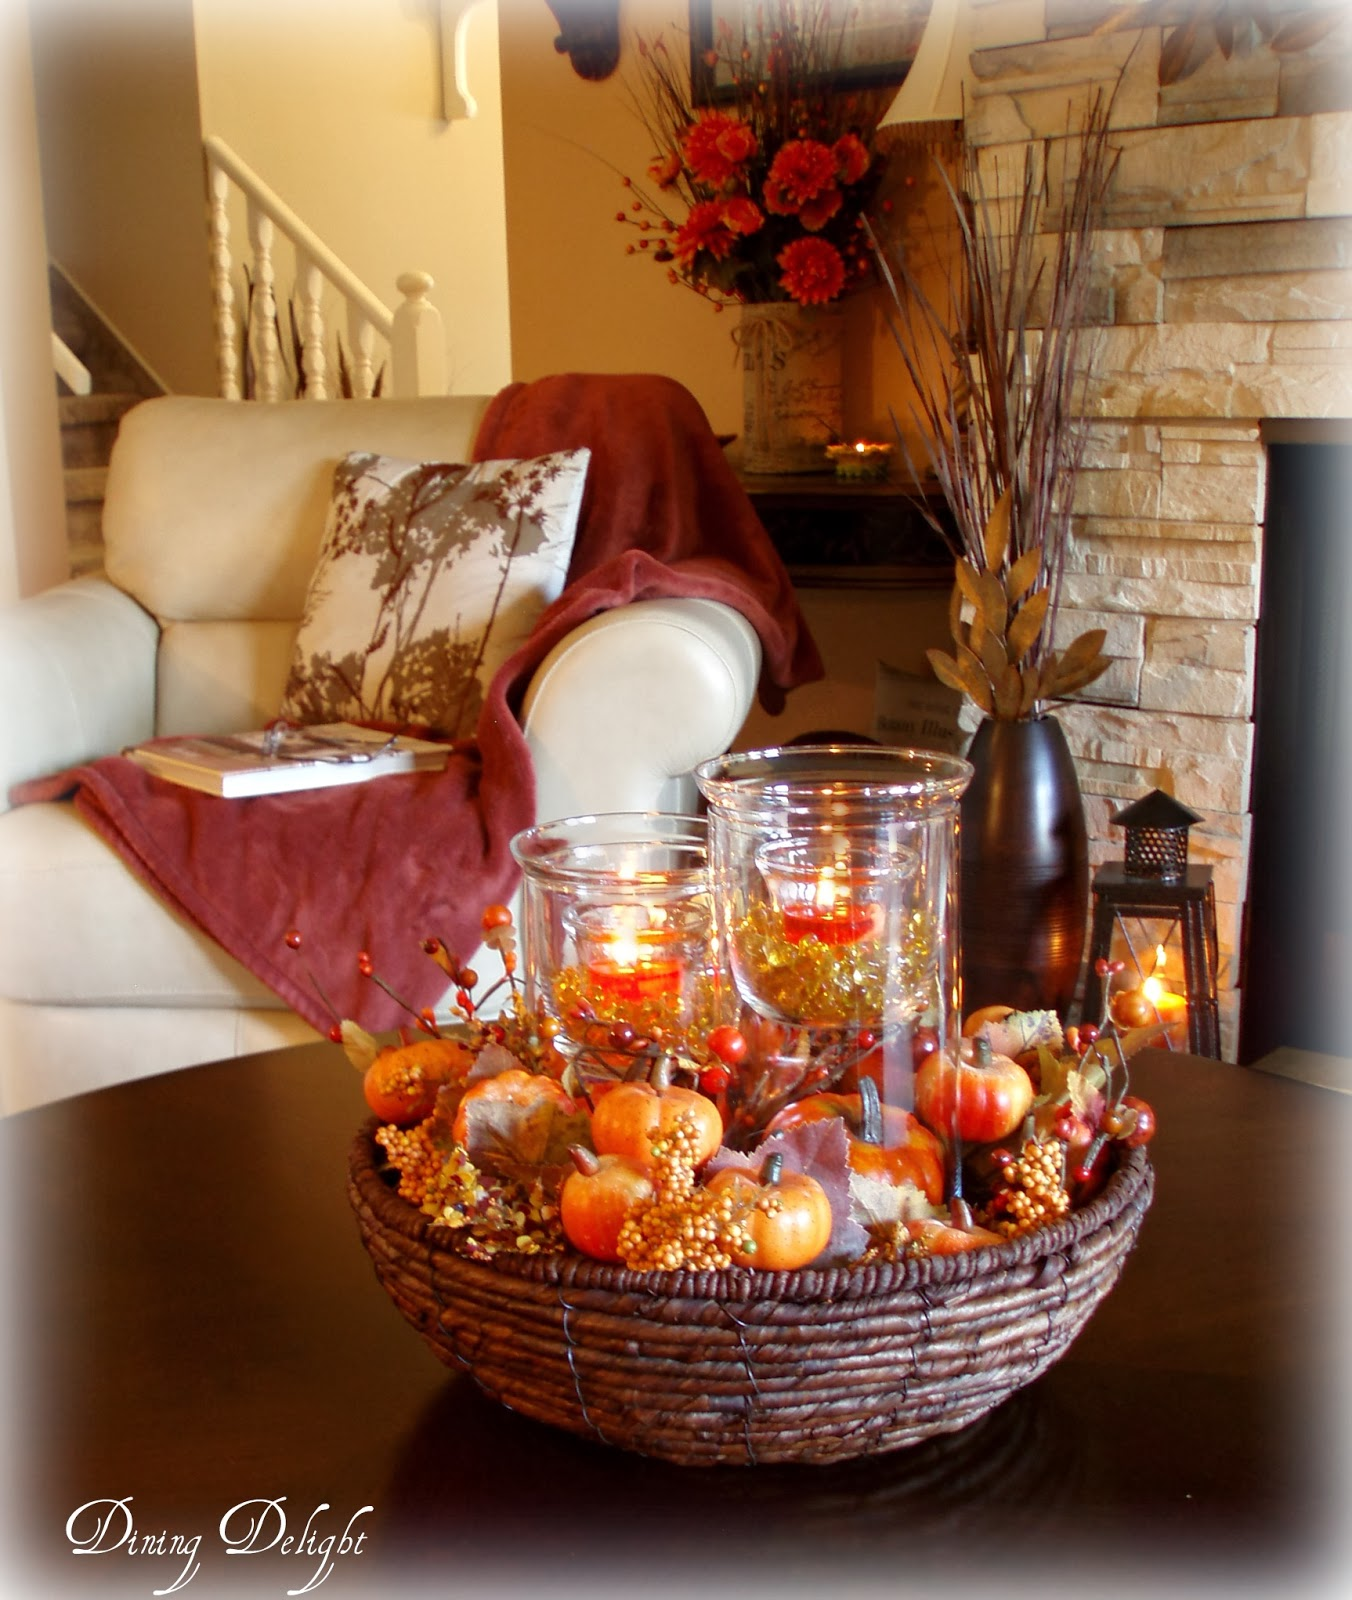 Dining delight fall coffee table centerpiece for Pictures of fall table decorations